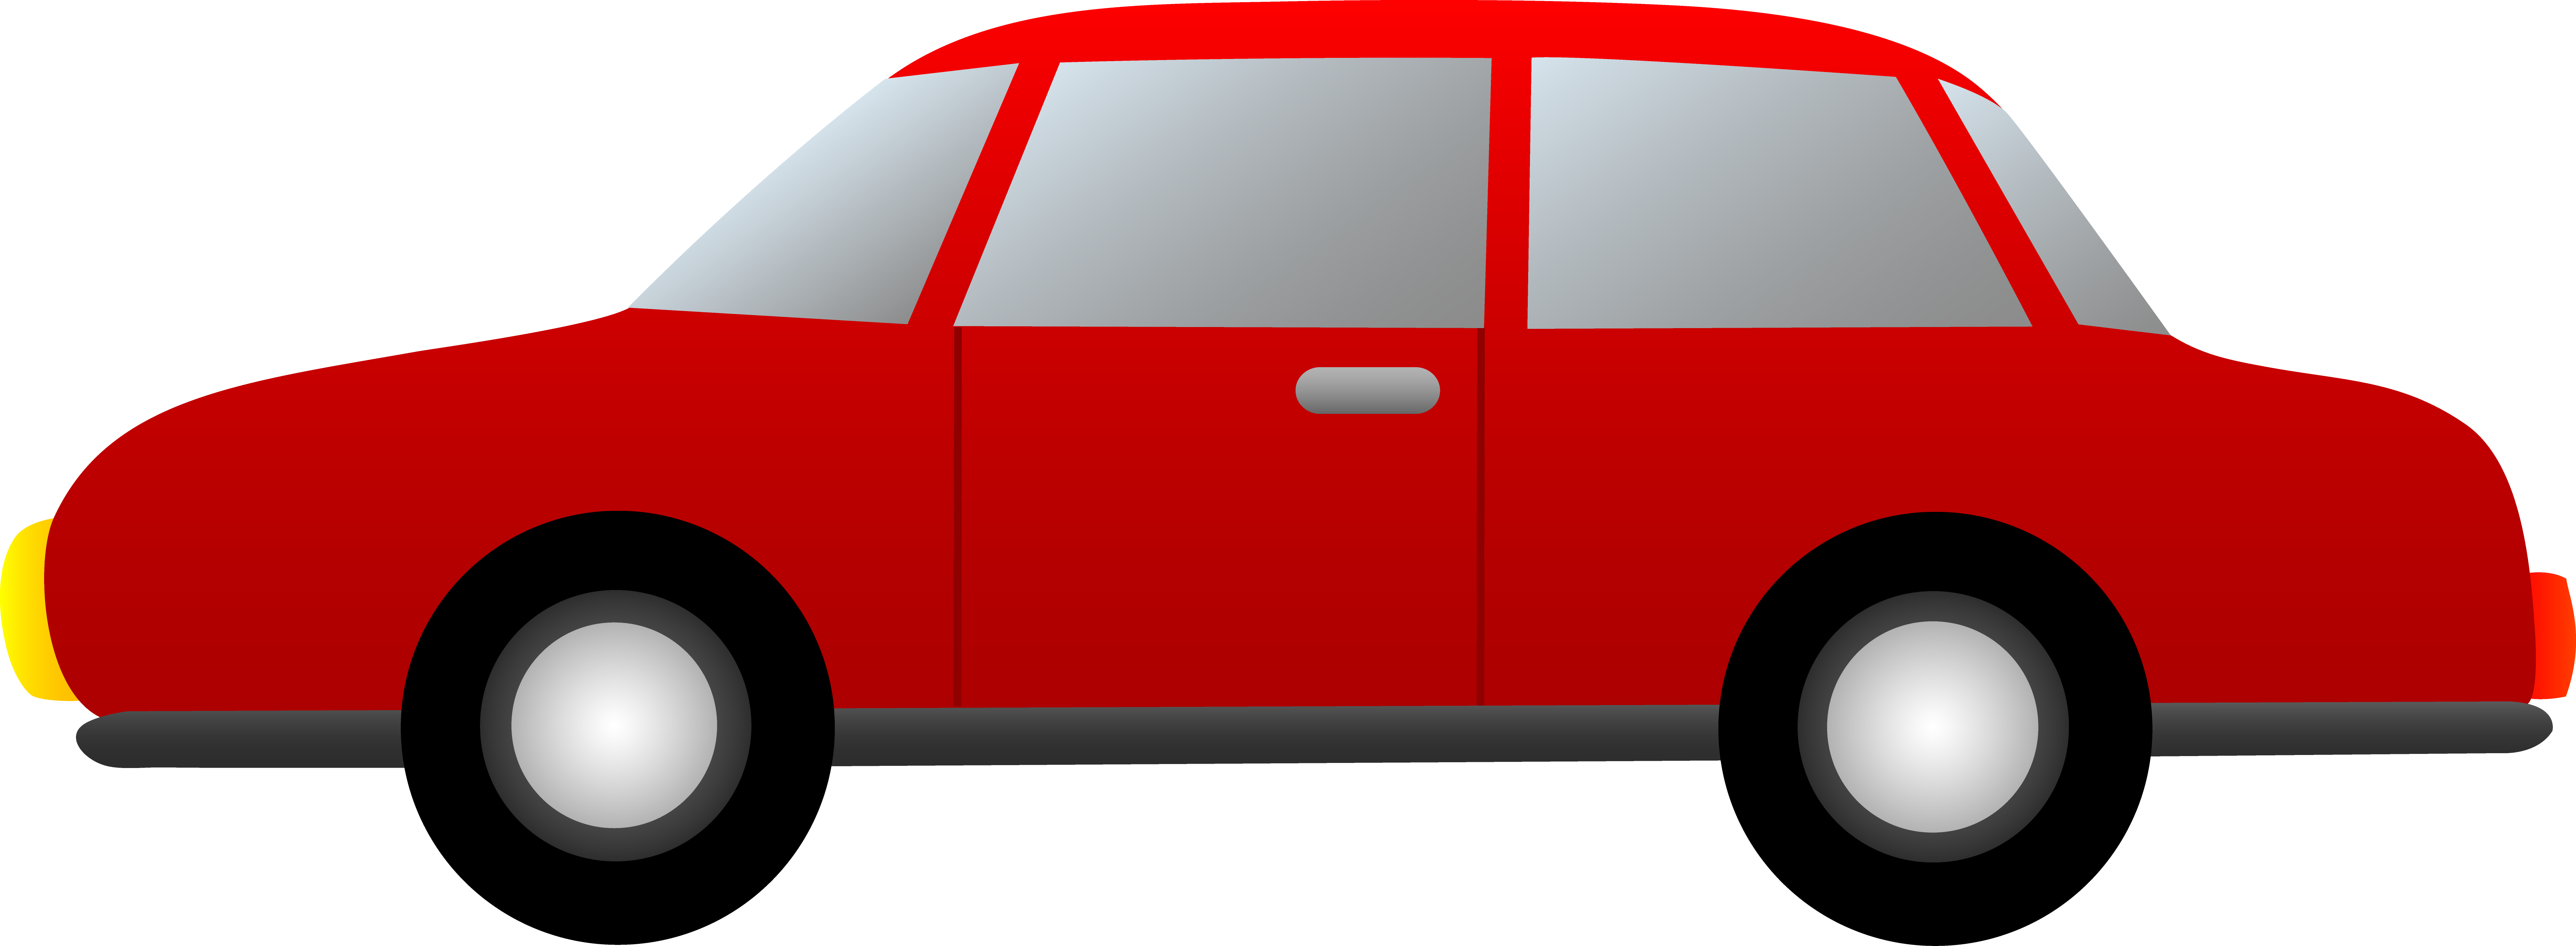 7122x2615 Simple Red Car